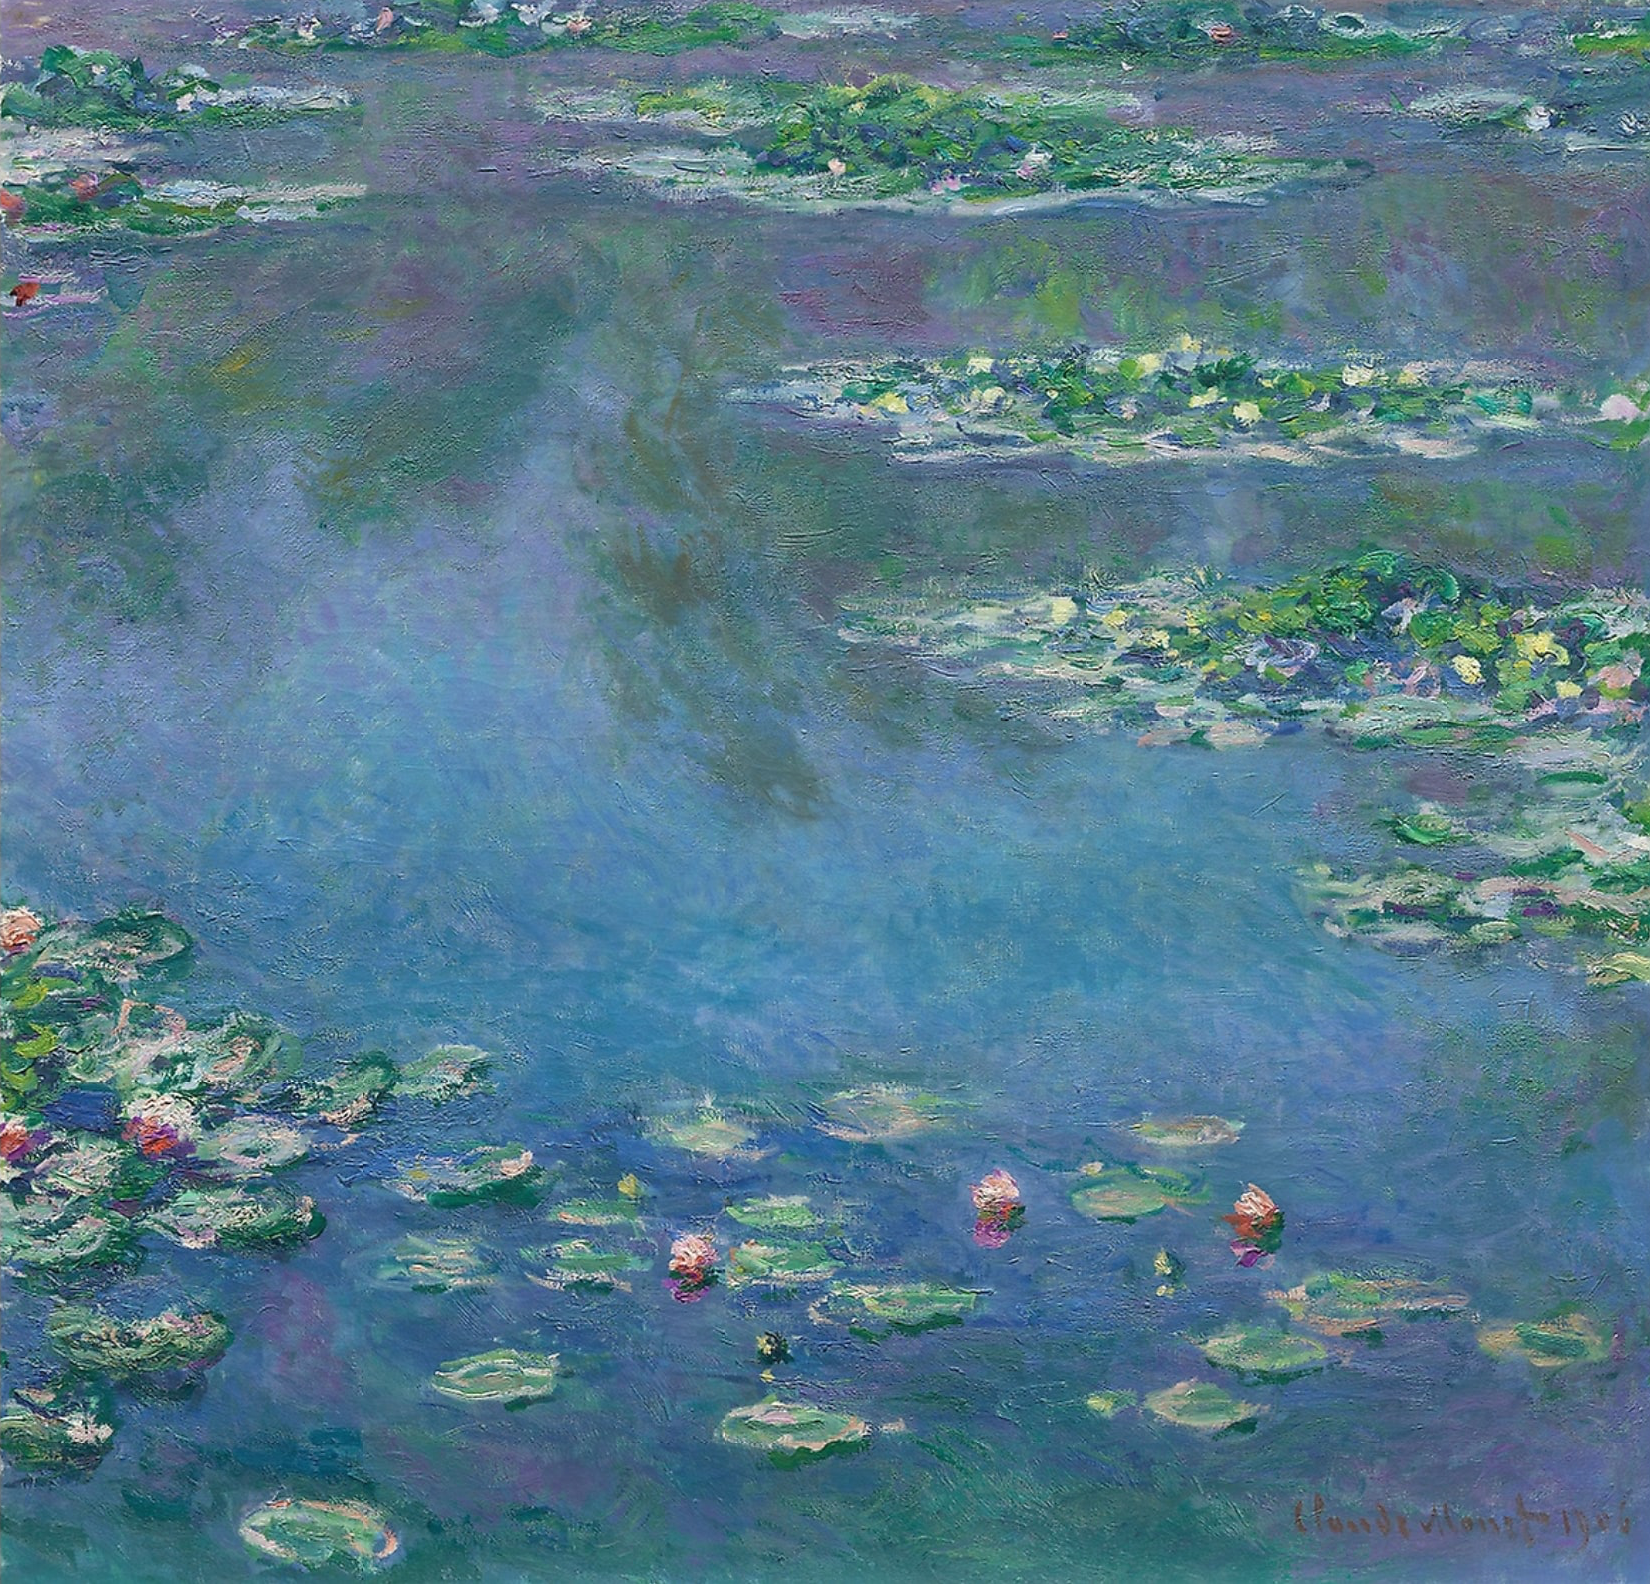 Monet's water lilies at the Art Institute of Chicago